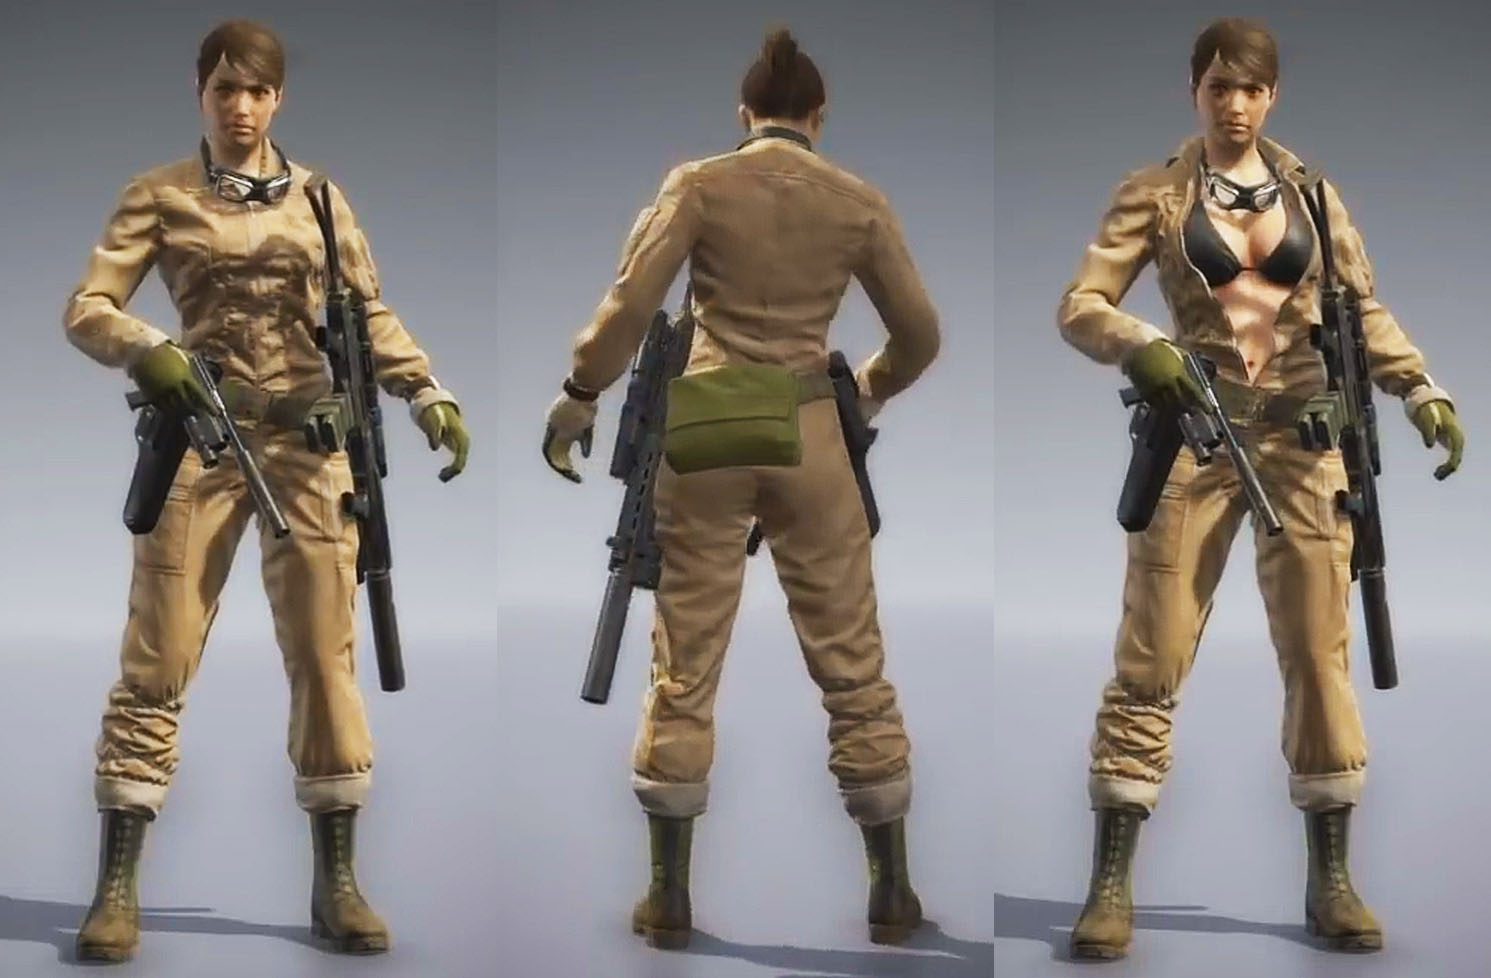 Metal Gear Solid V: The Phantom Pain Форма - Комбез (Ева) Jumpsuit (Eva)